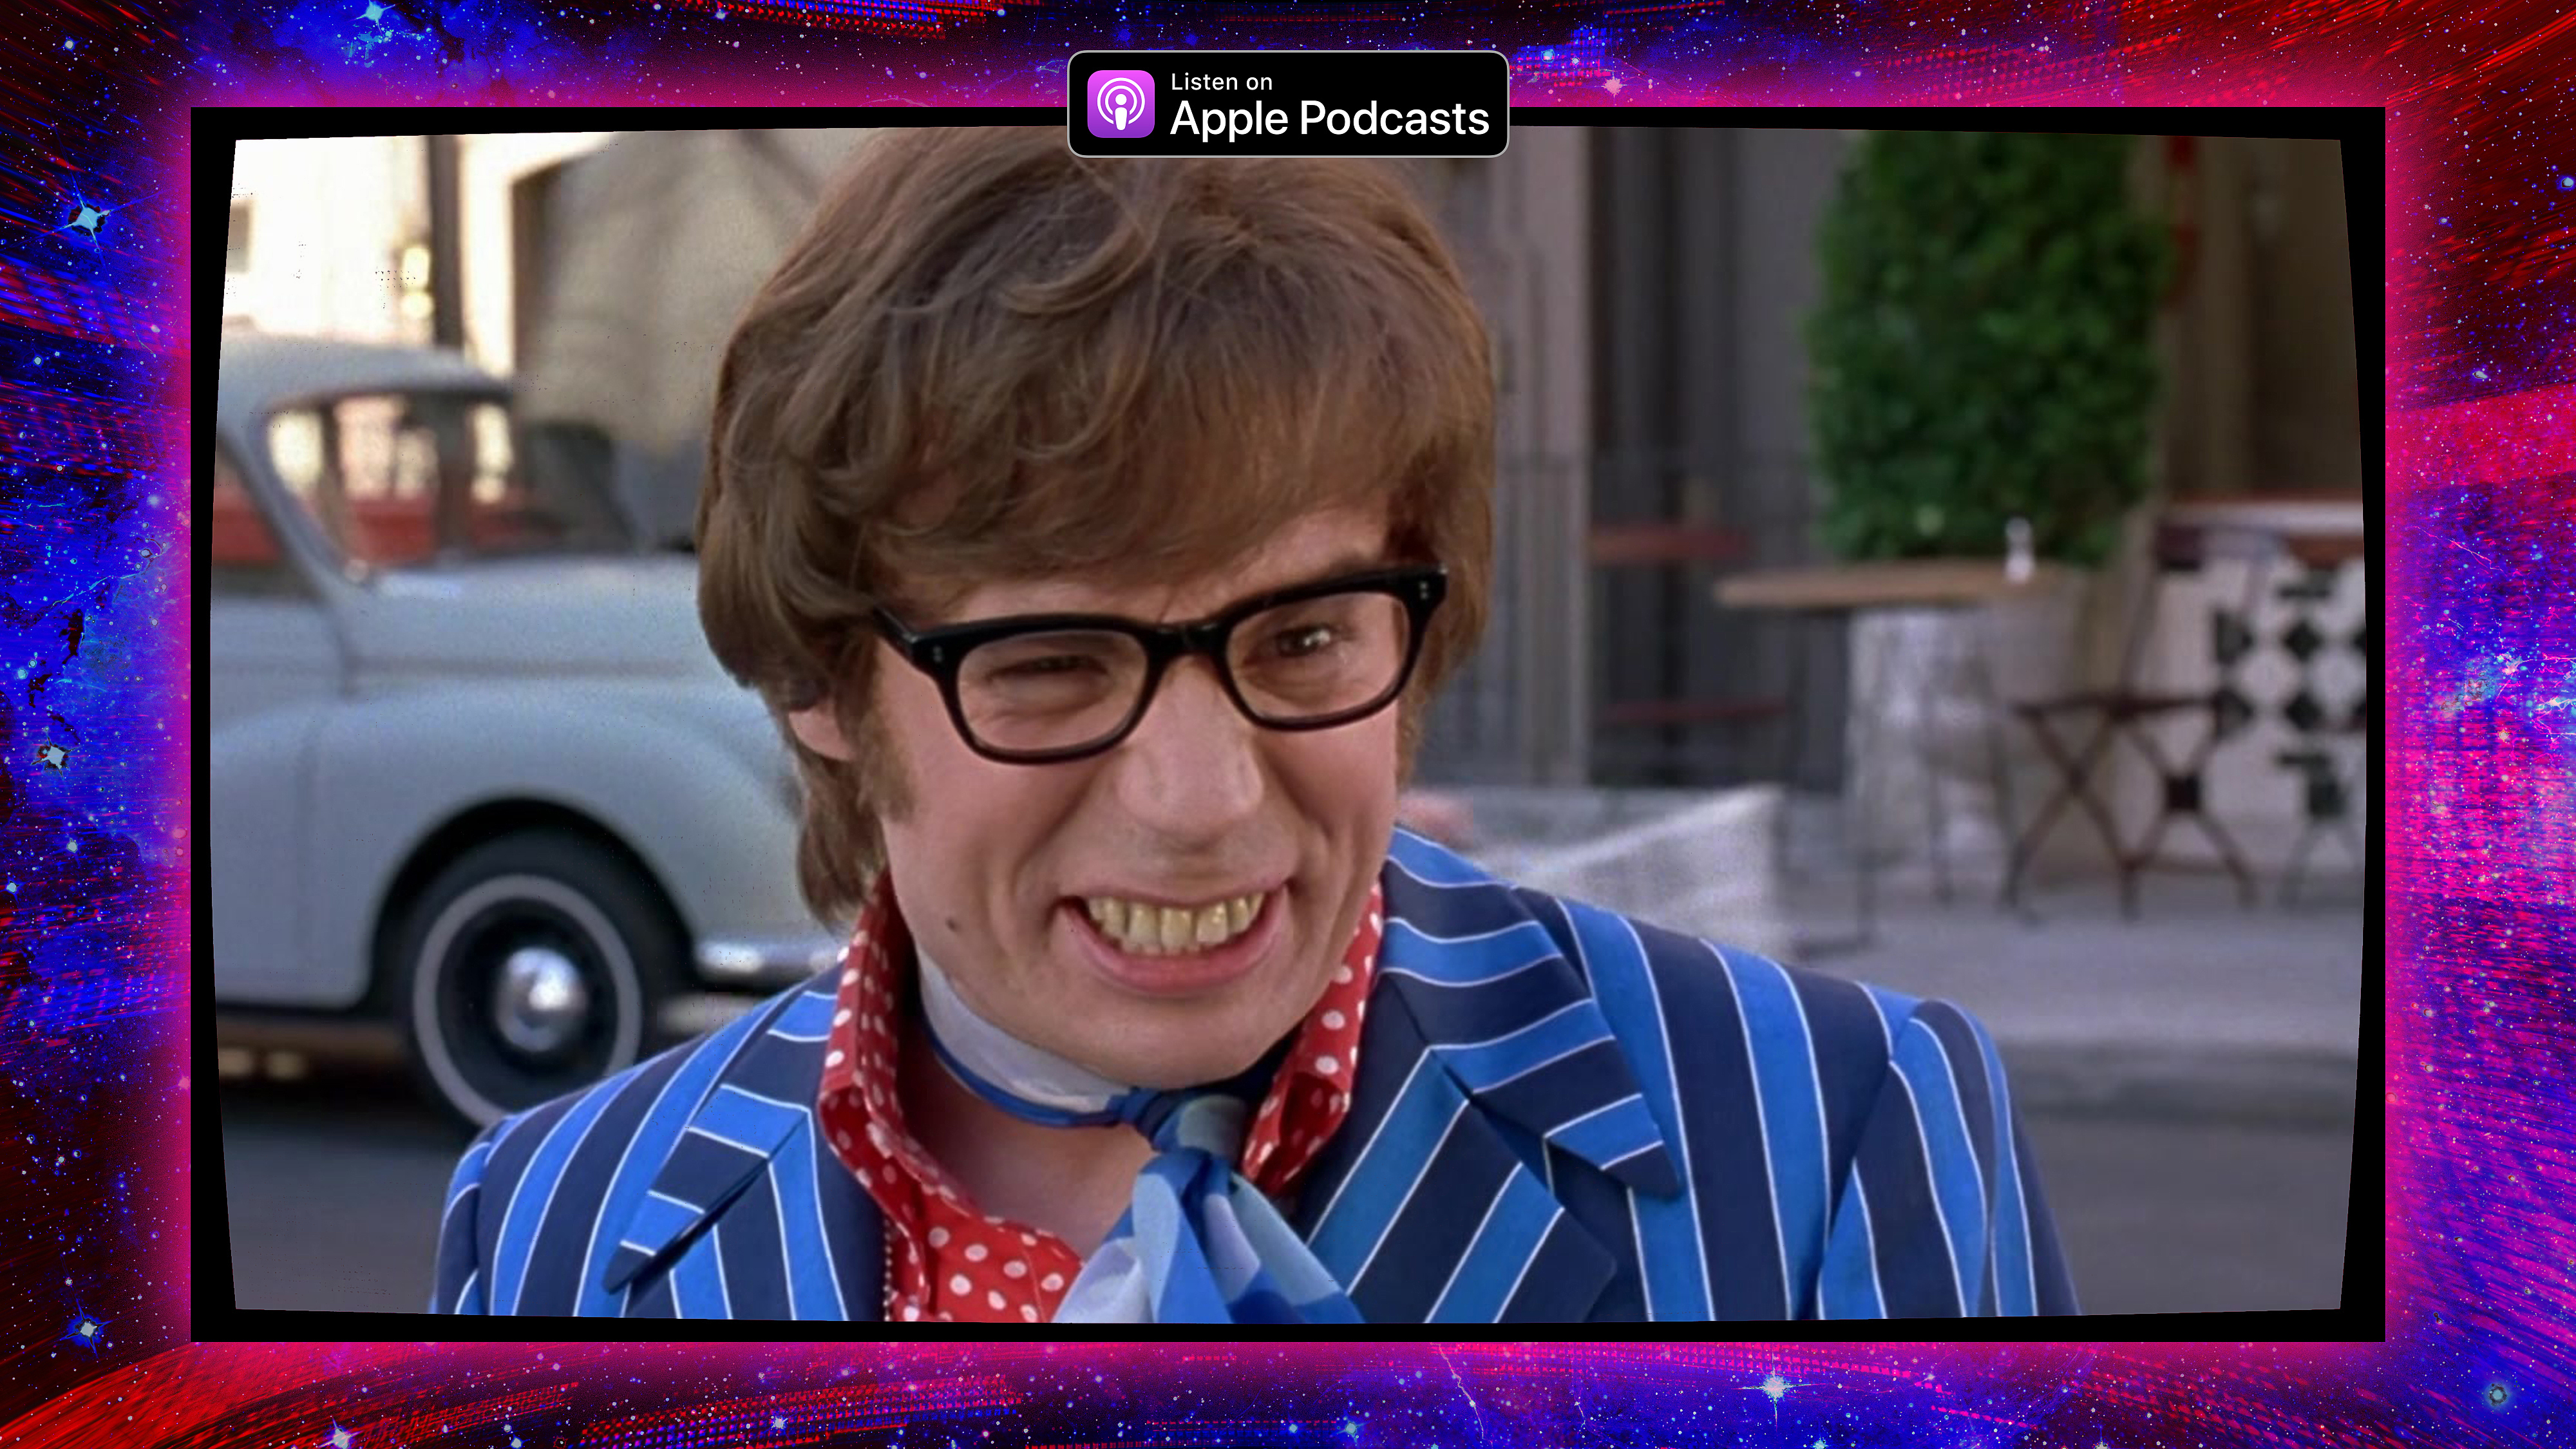 Graphic featuring Mike Myers Austin Powers character and a photo of Maggie Mae Fish